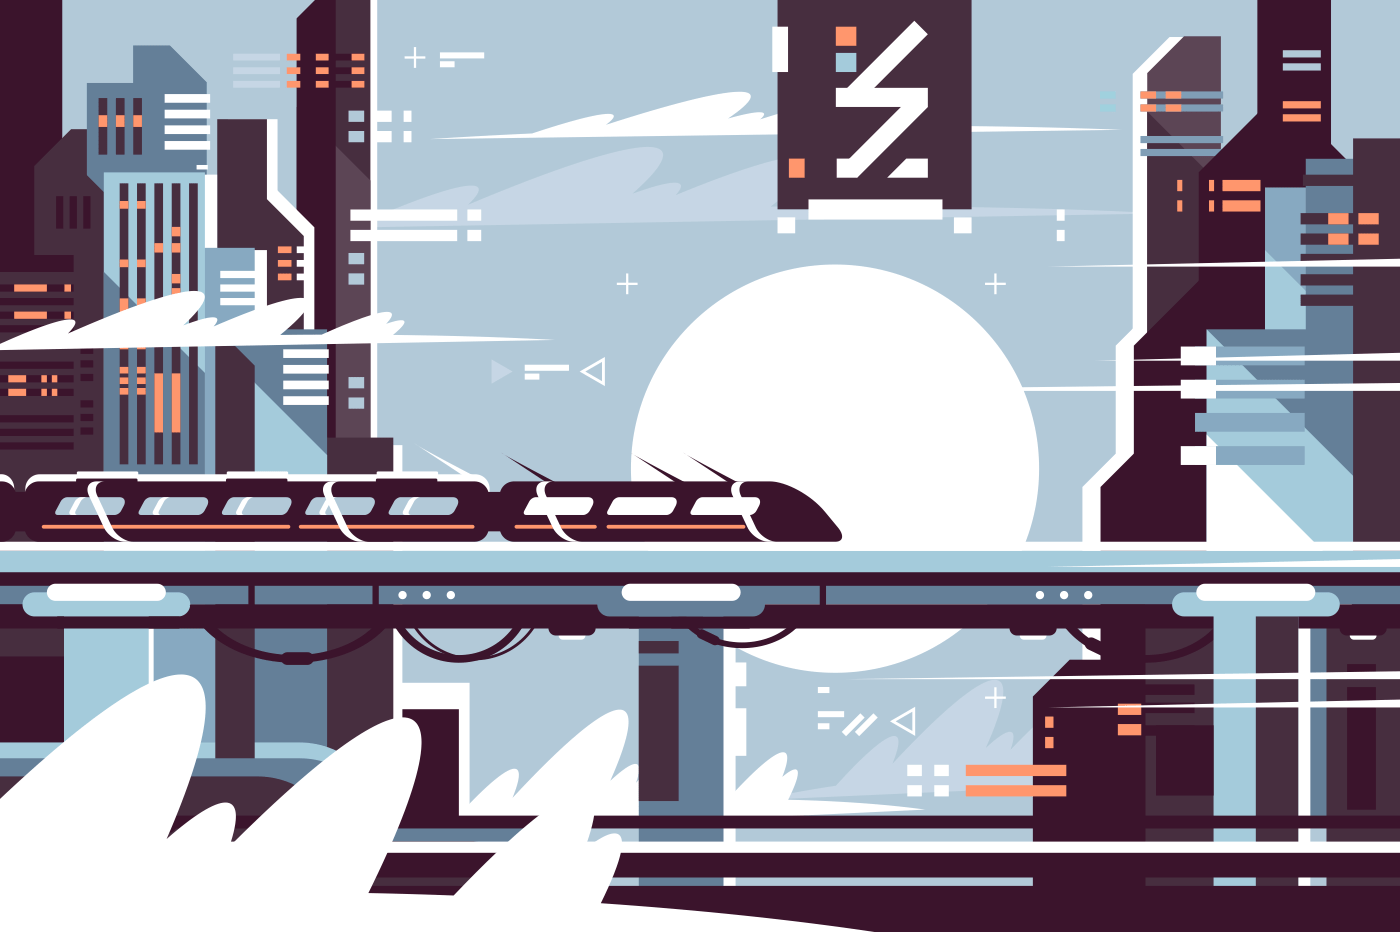 Electric train. Concept moving electric train in city. Vector illustration.